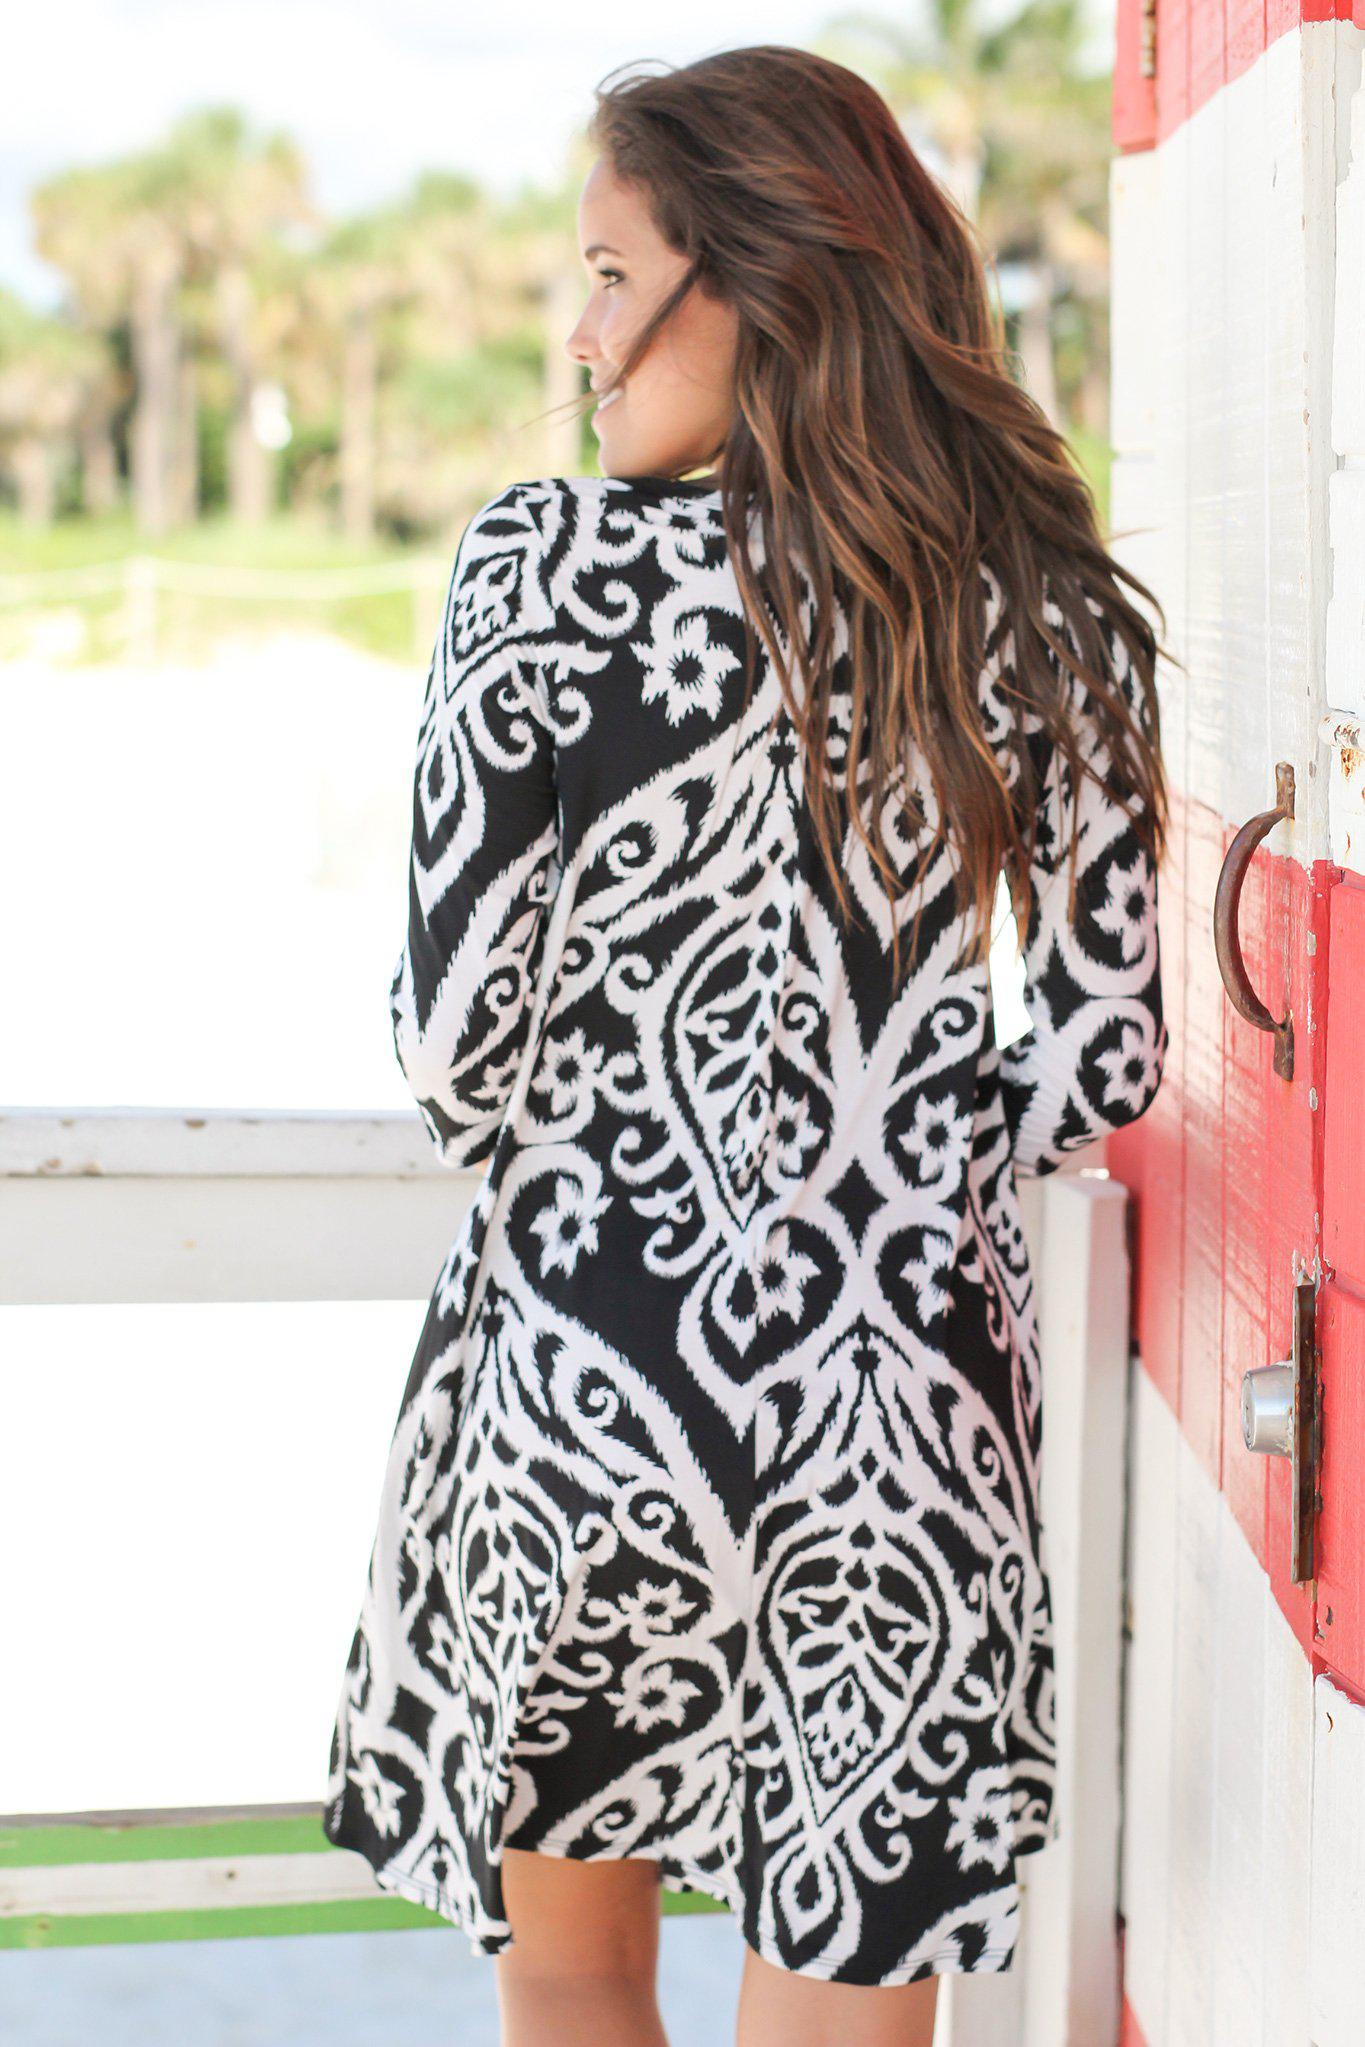 Black and White Printed 3/4 Sleeve Dress with Keyhole